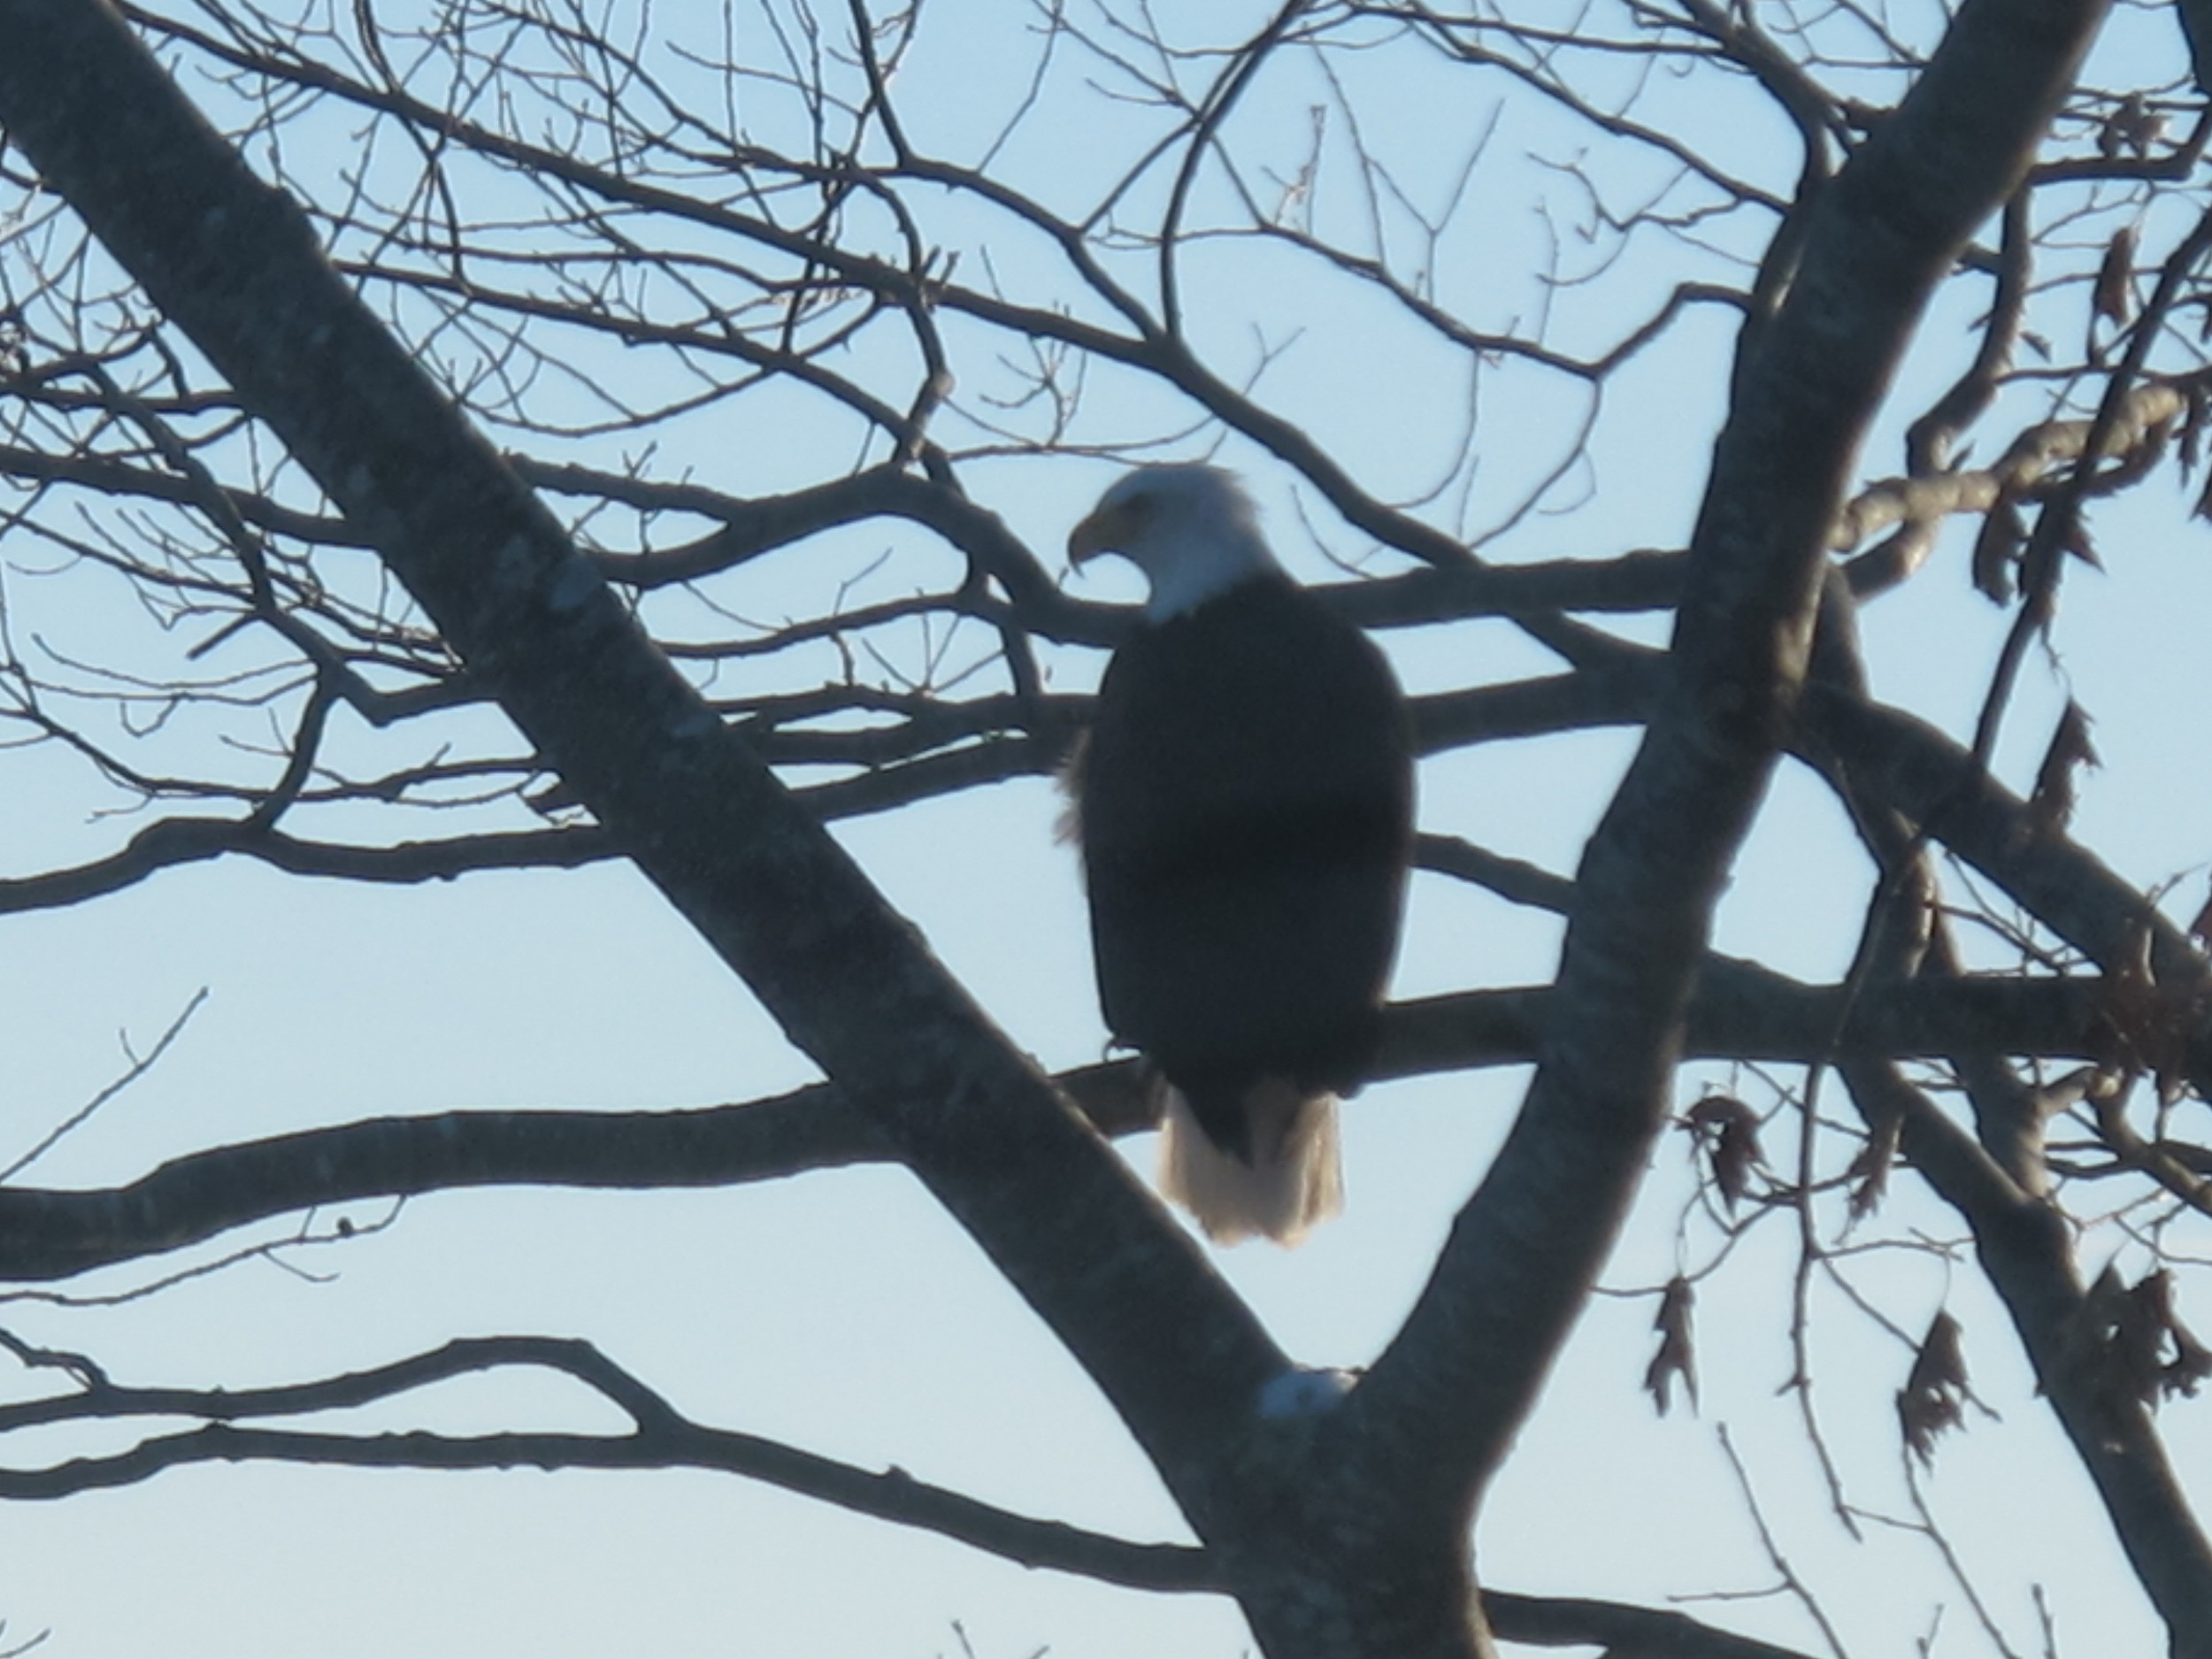 A bald eagle perched near the duck's frozen body but did not seem to notice it. Perhaps the cold eliminated any smell.